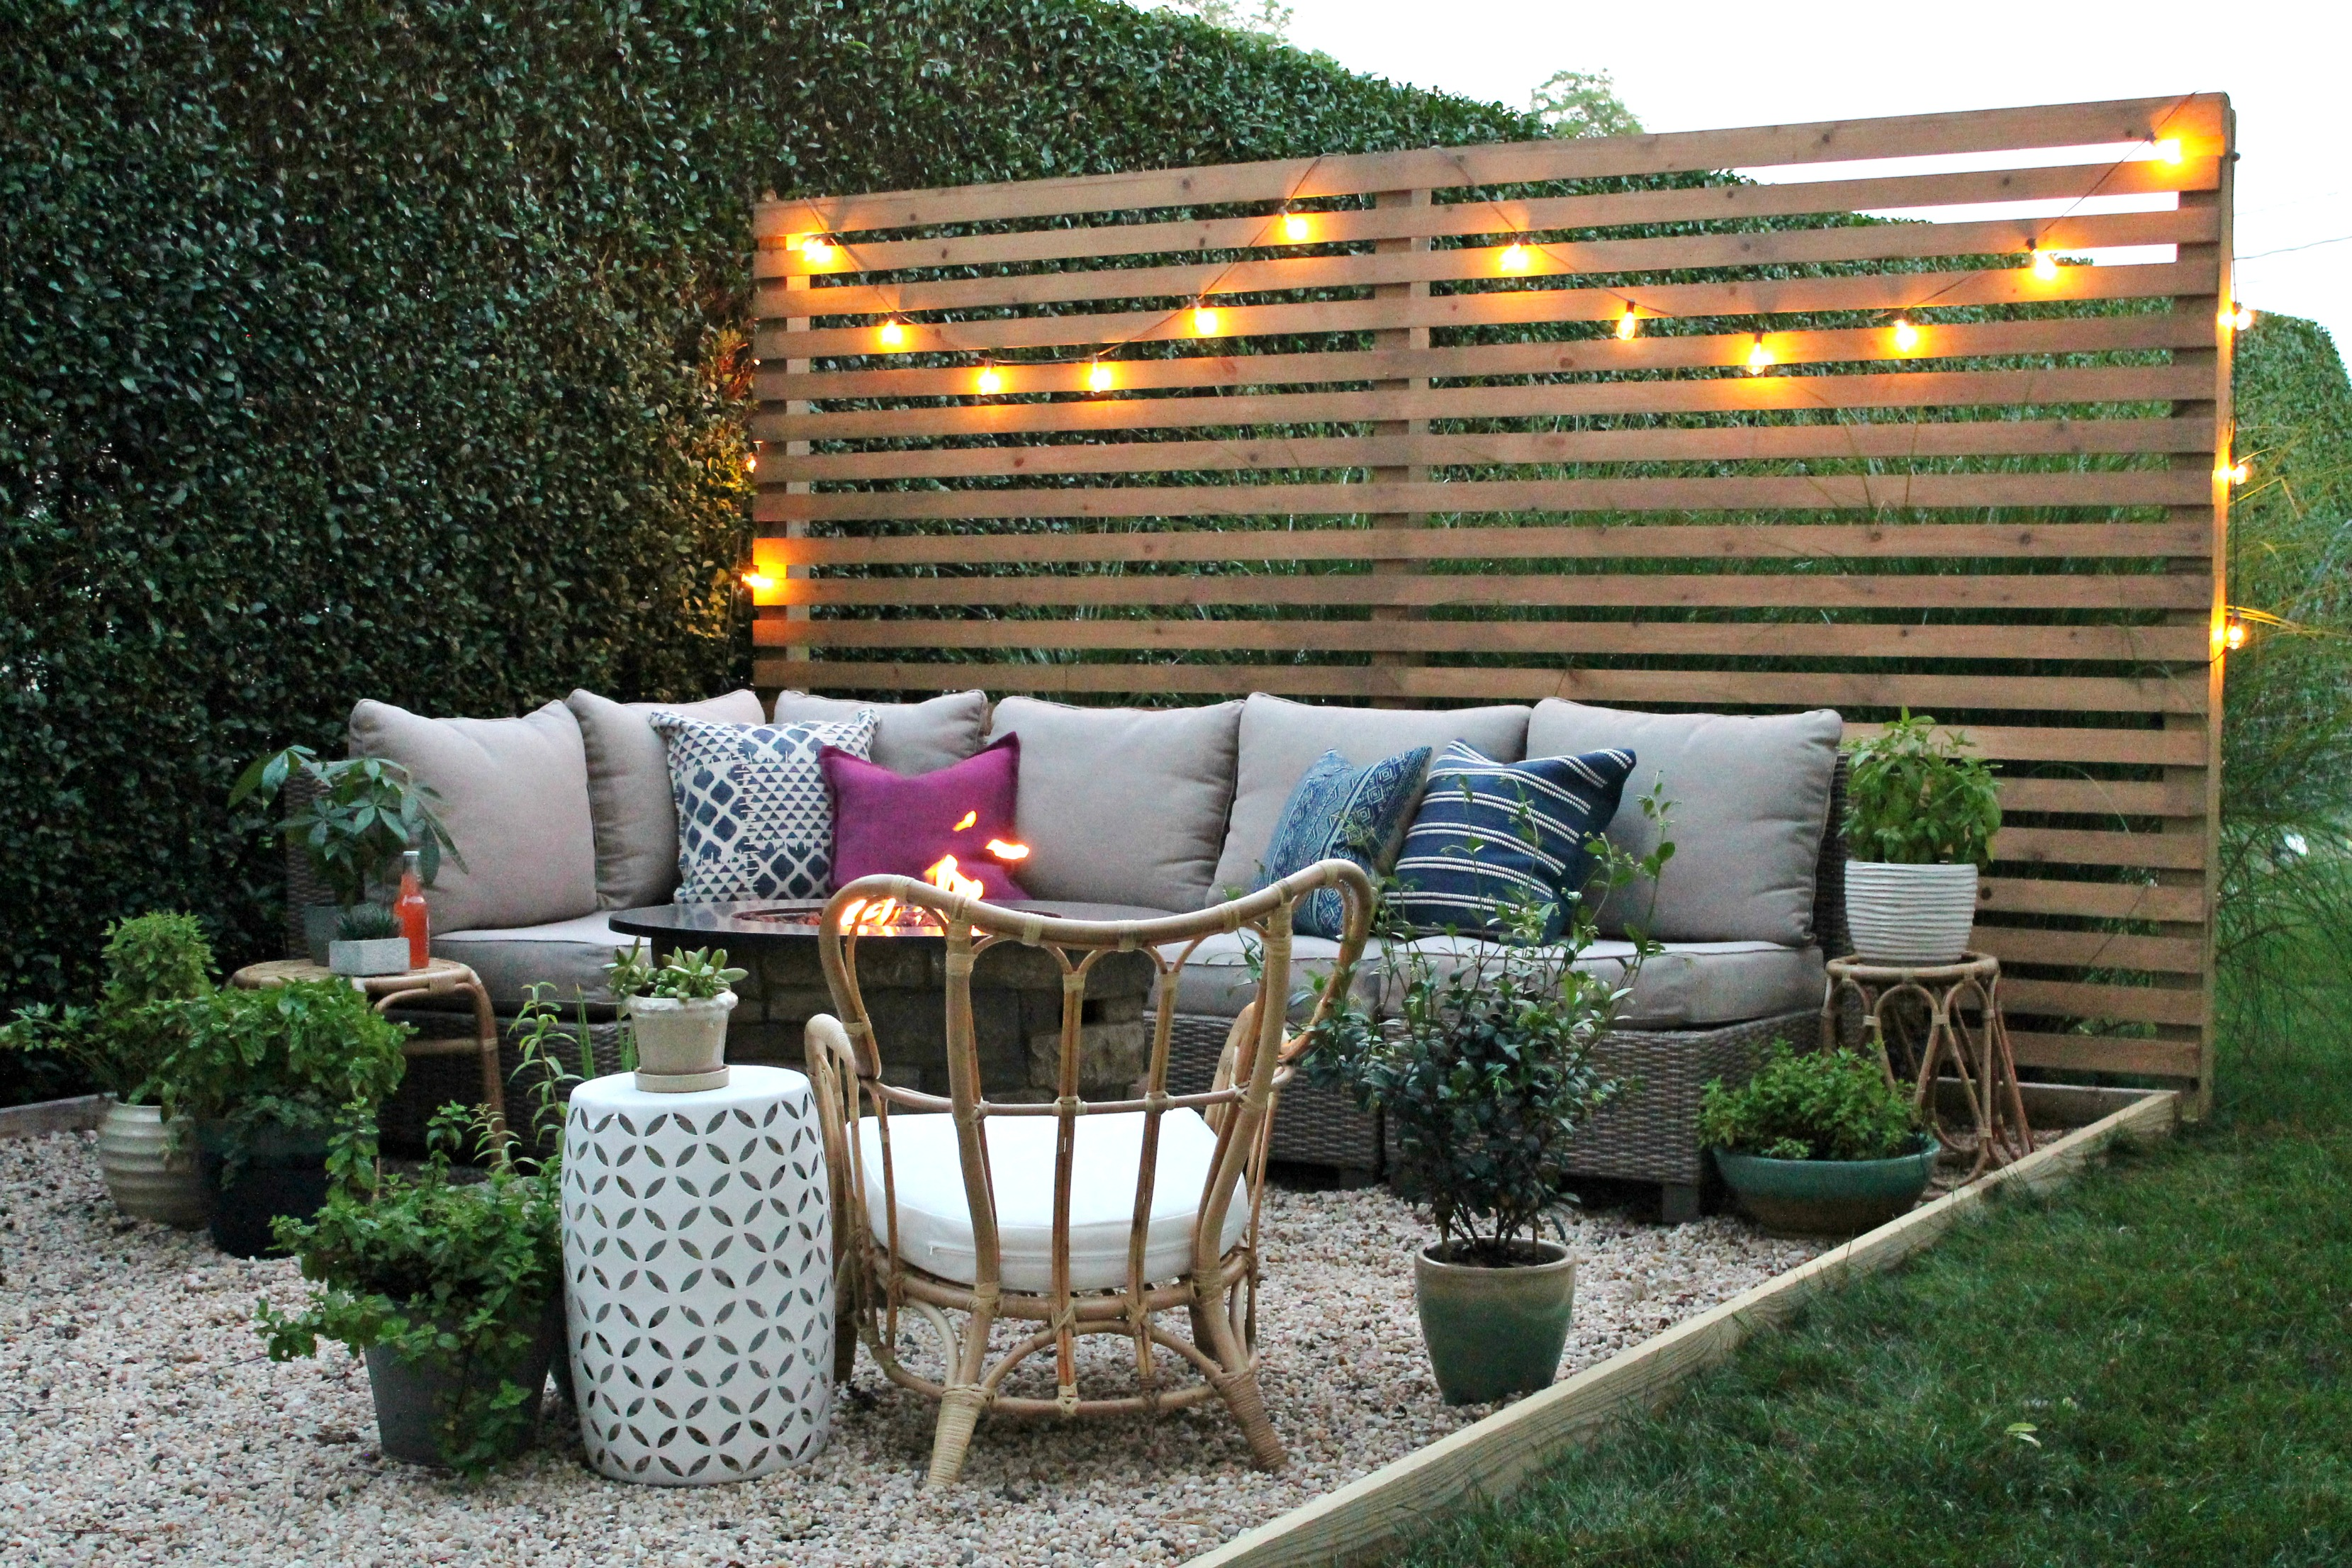 Outdoor Patio With Sectional Fire Pit And Privacy Screen